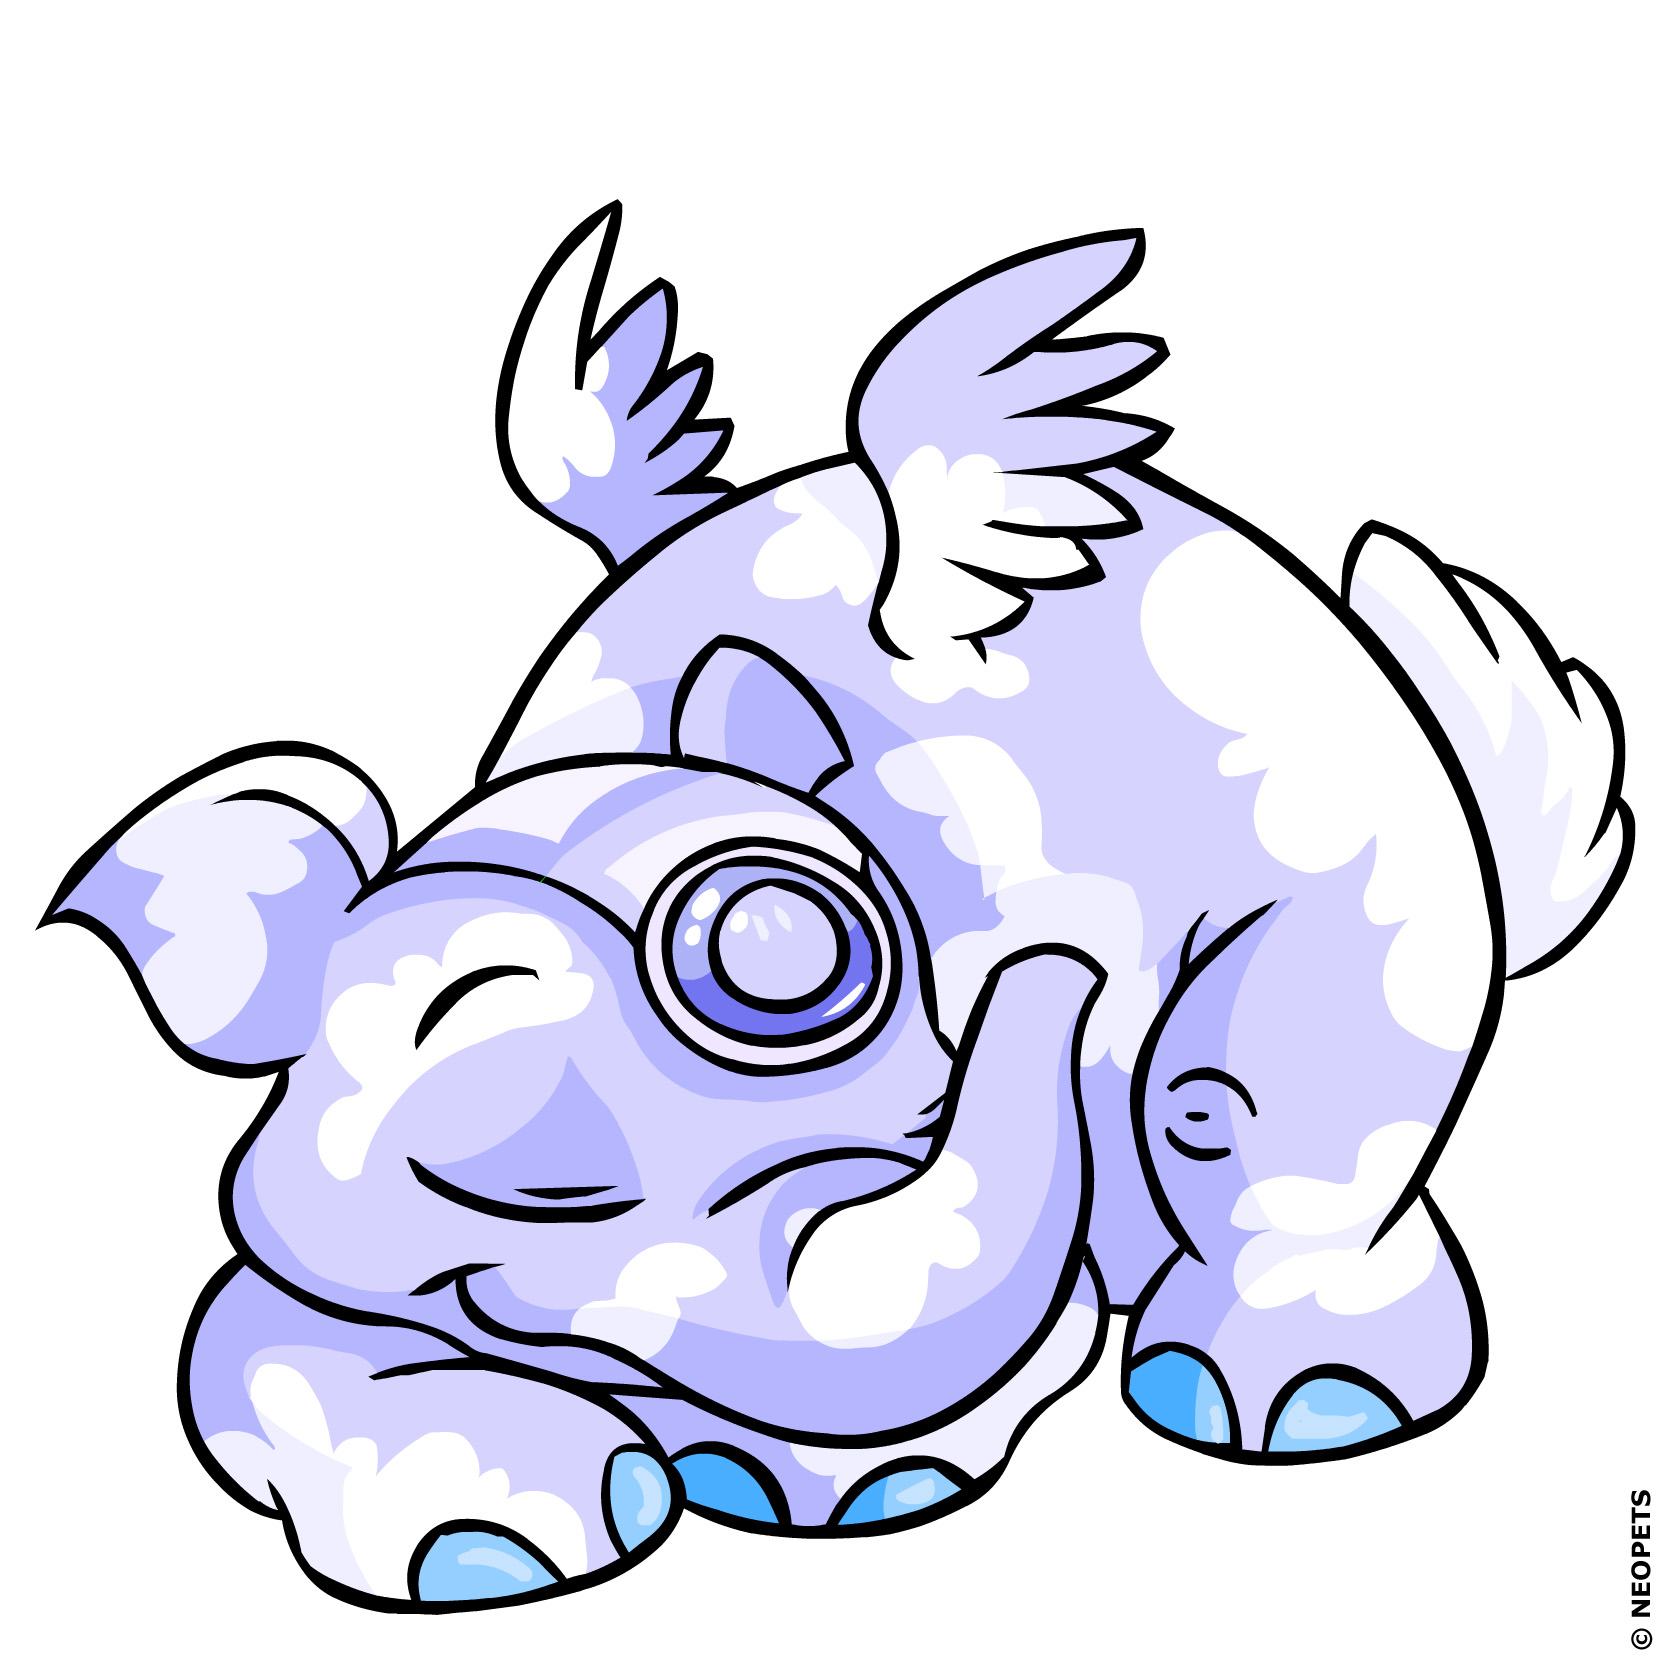 http://images.neopets.com/press/elephante_5.jpg